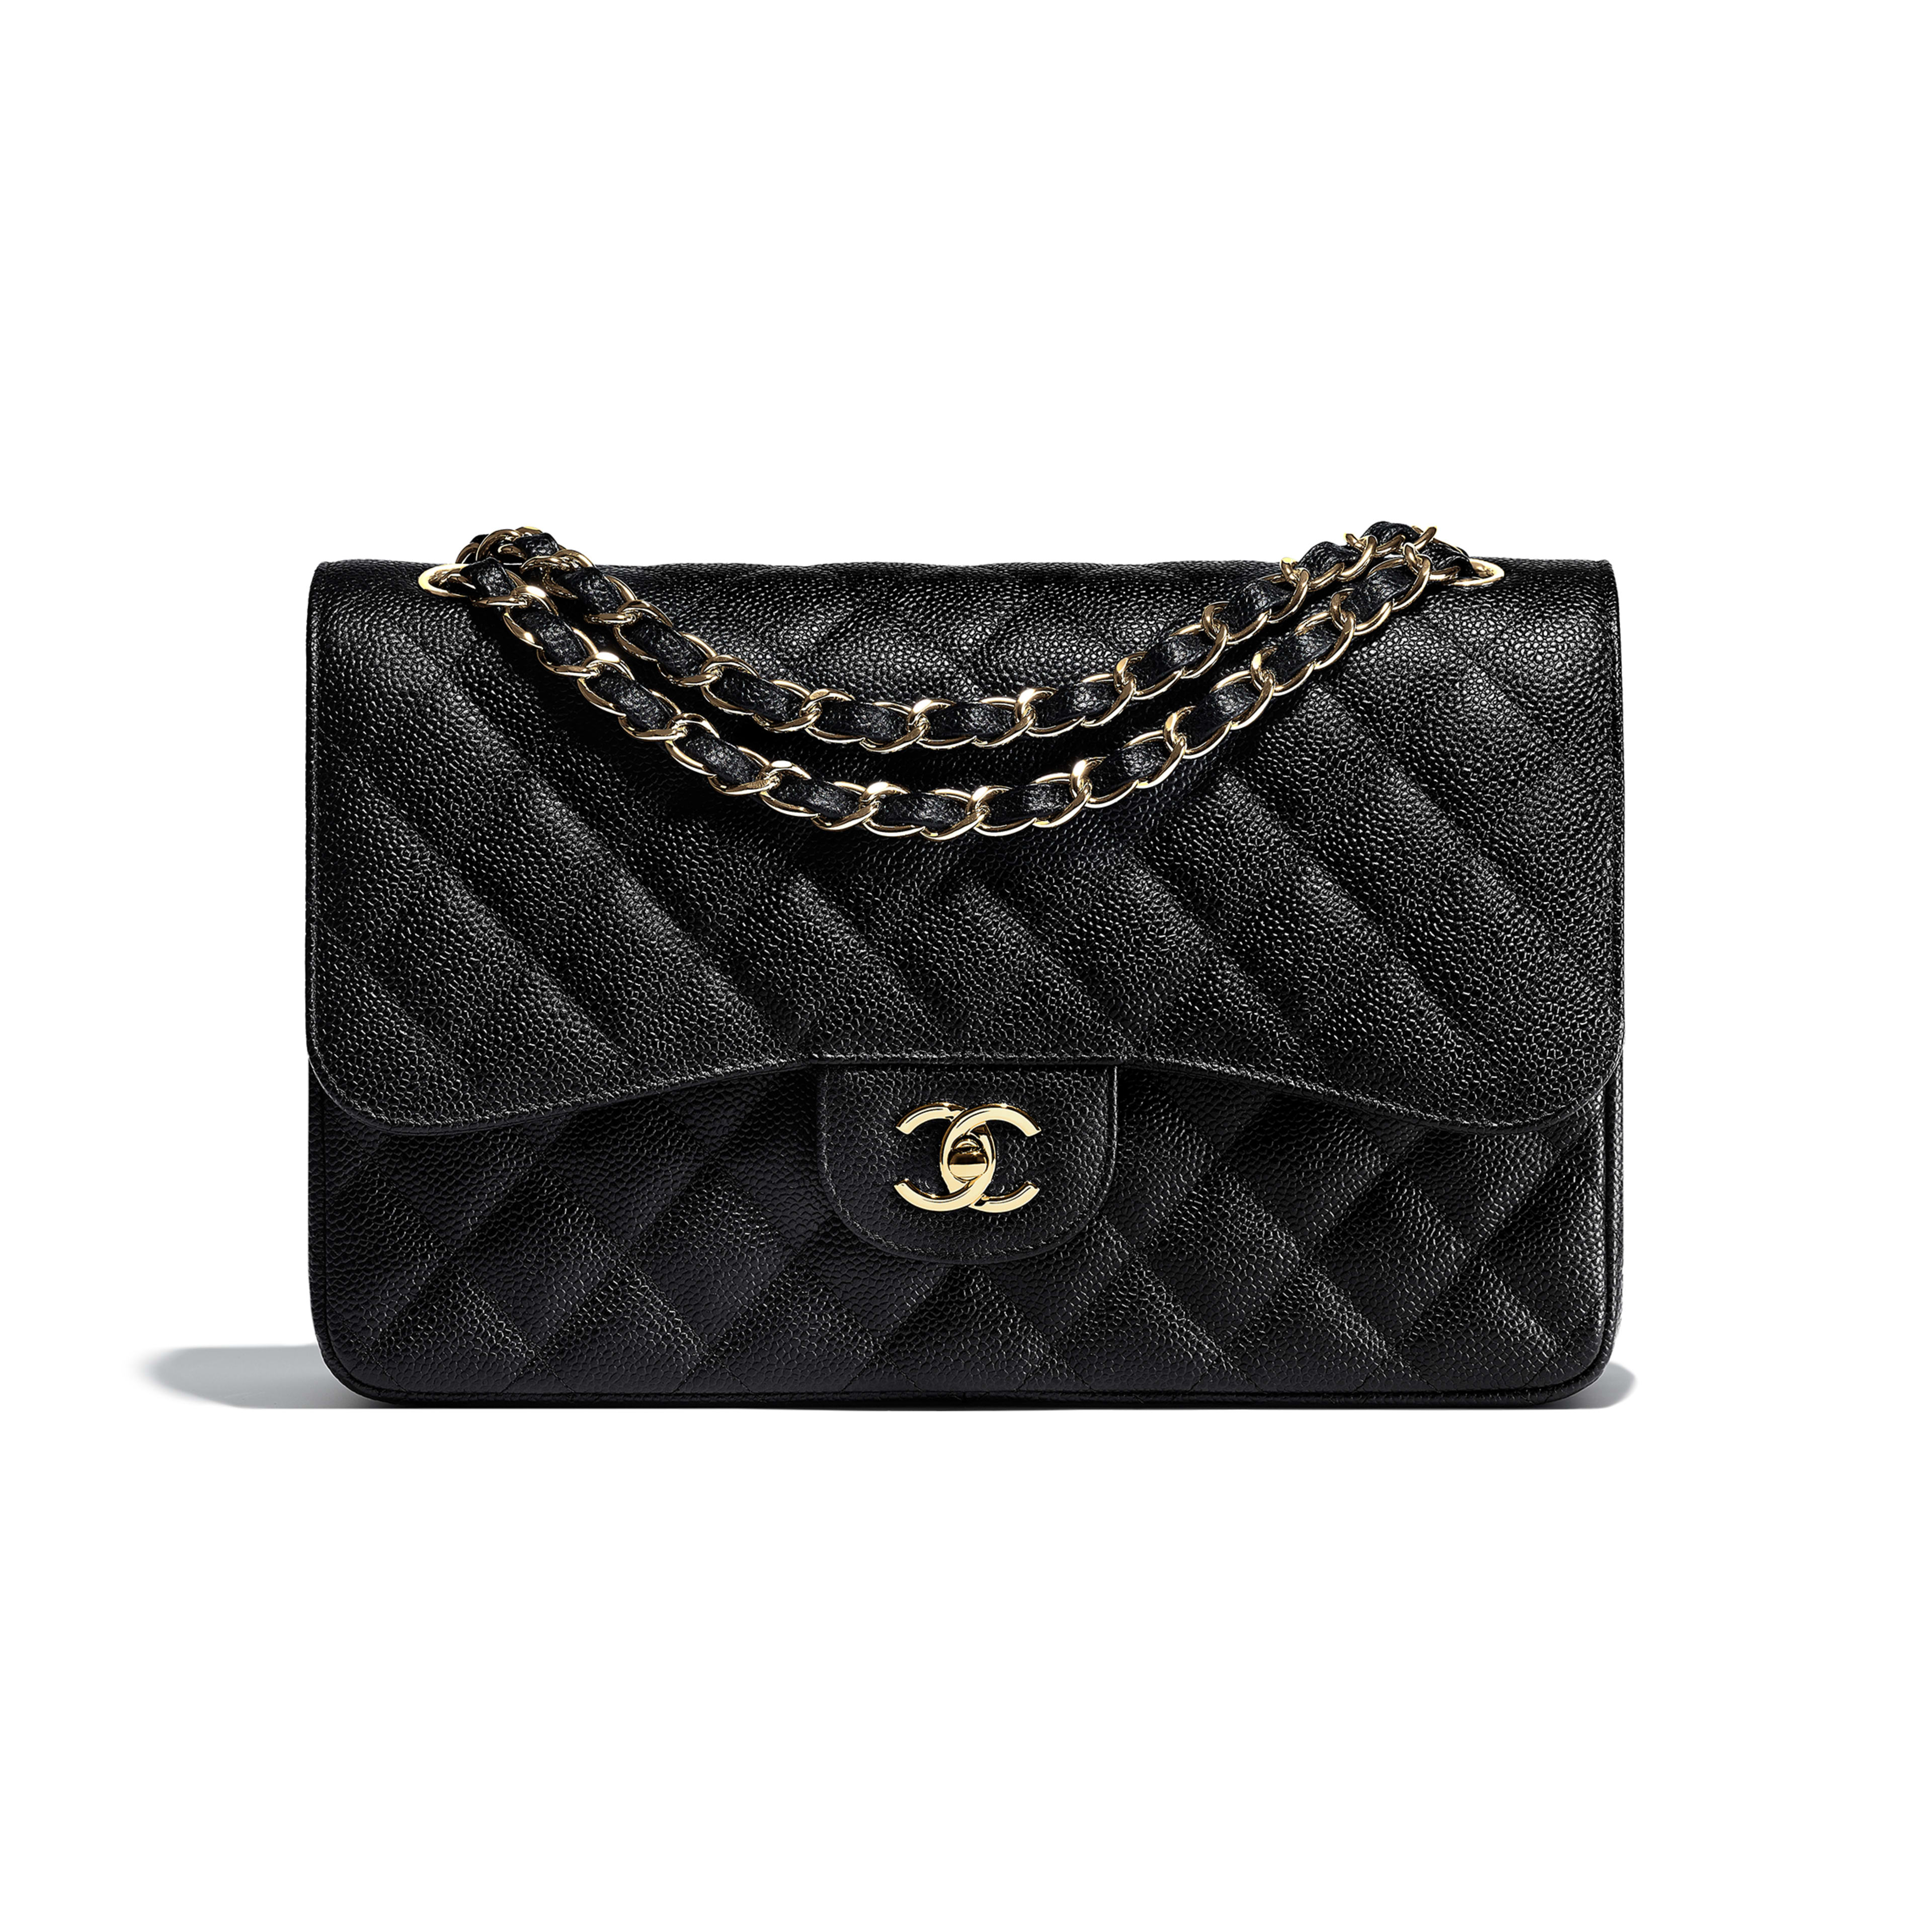 Large Classic Handbag - Black - Grained Calfskin & Gold-Tone Metal - Default view - see full sized version